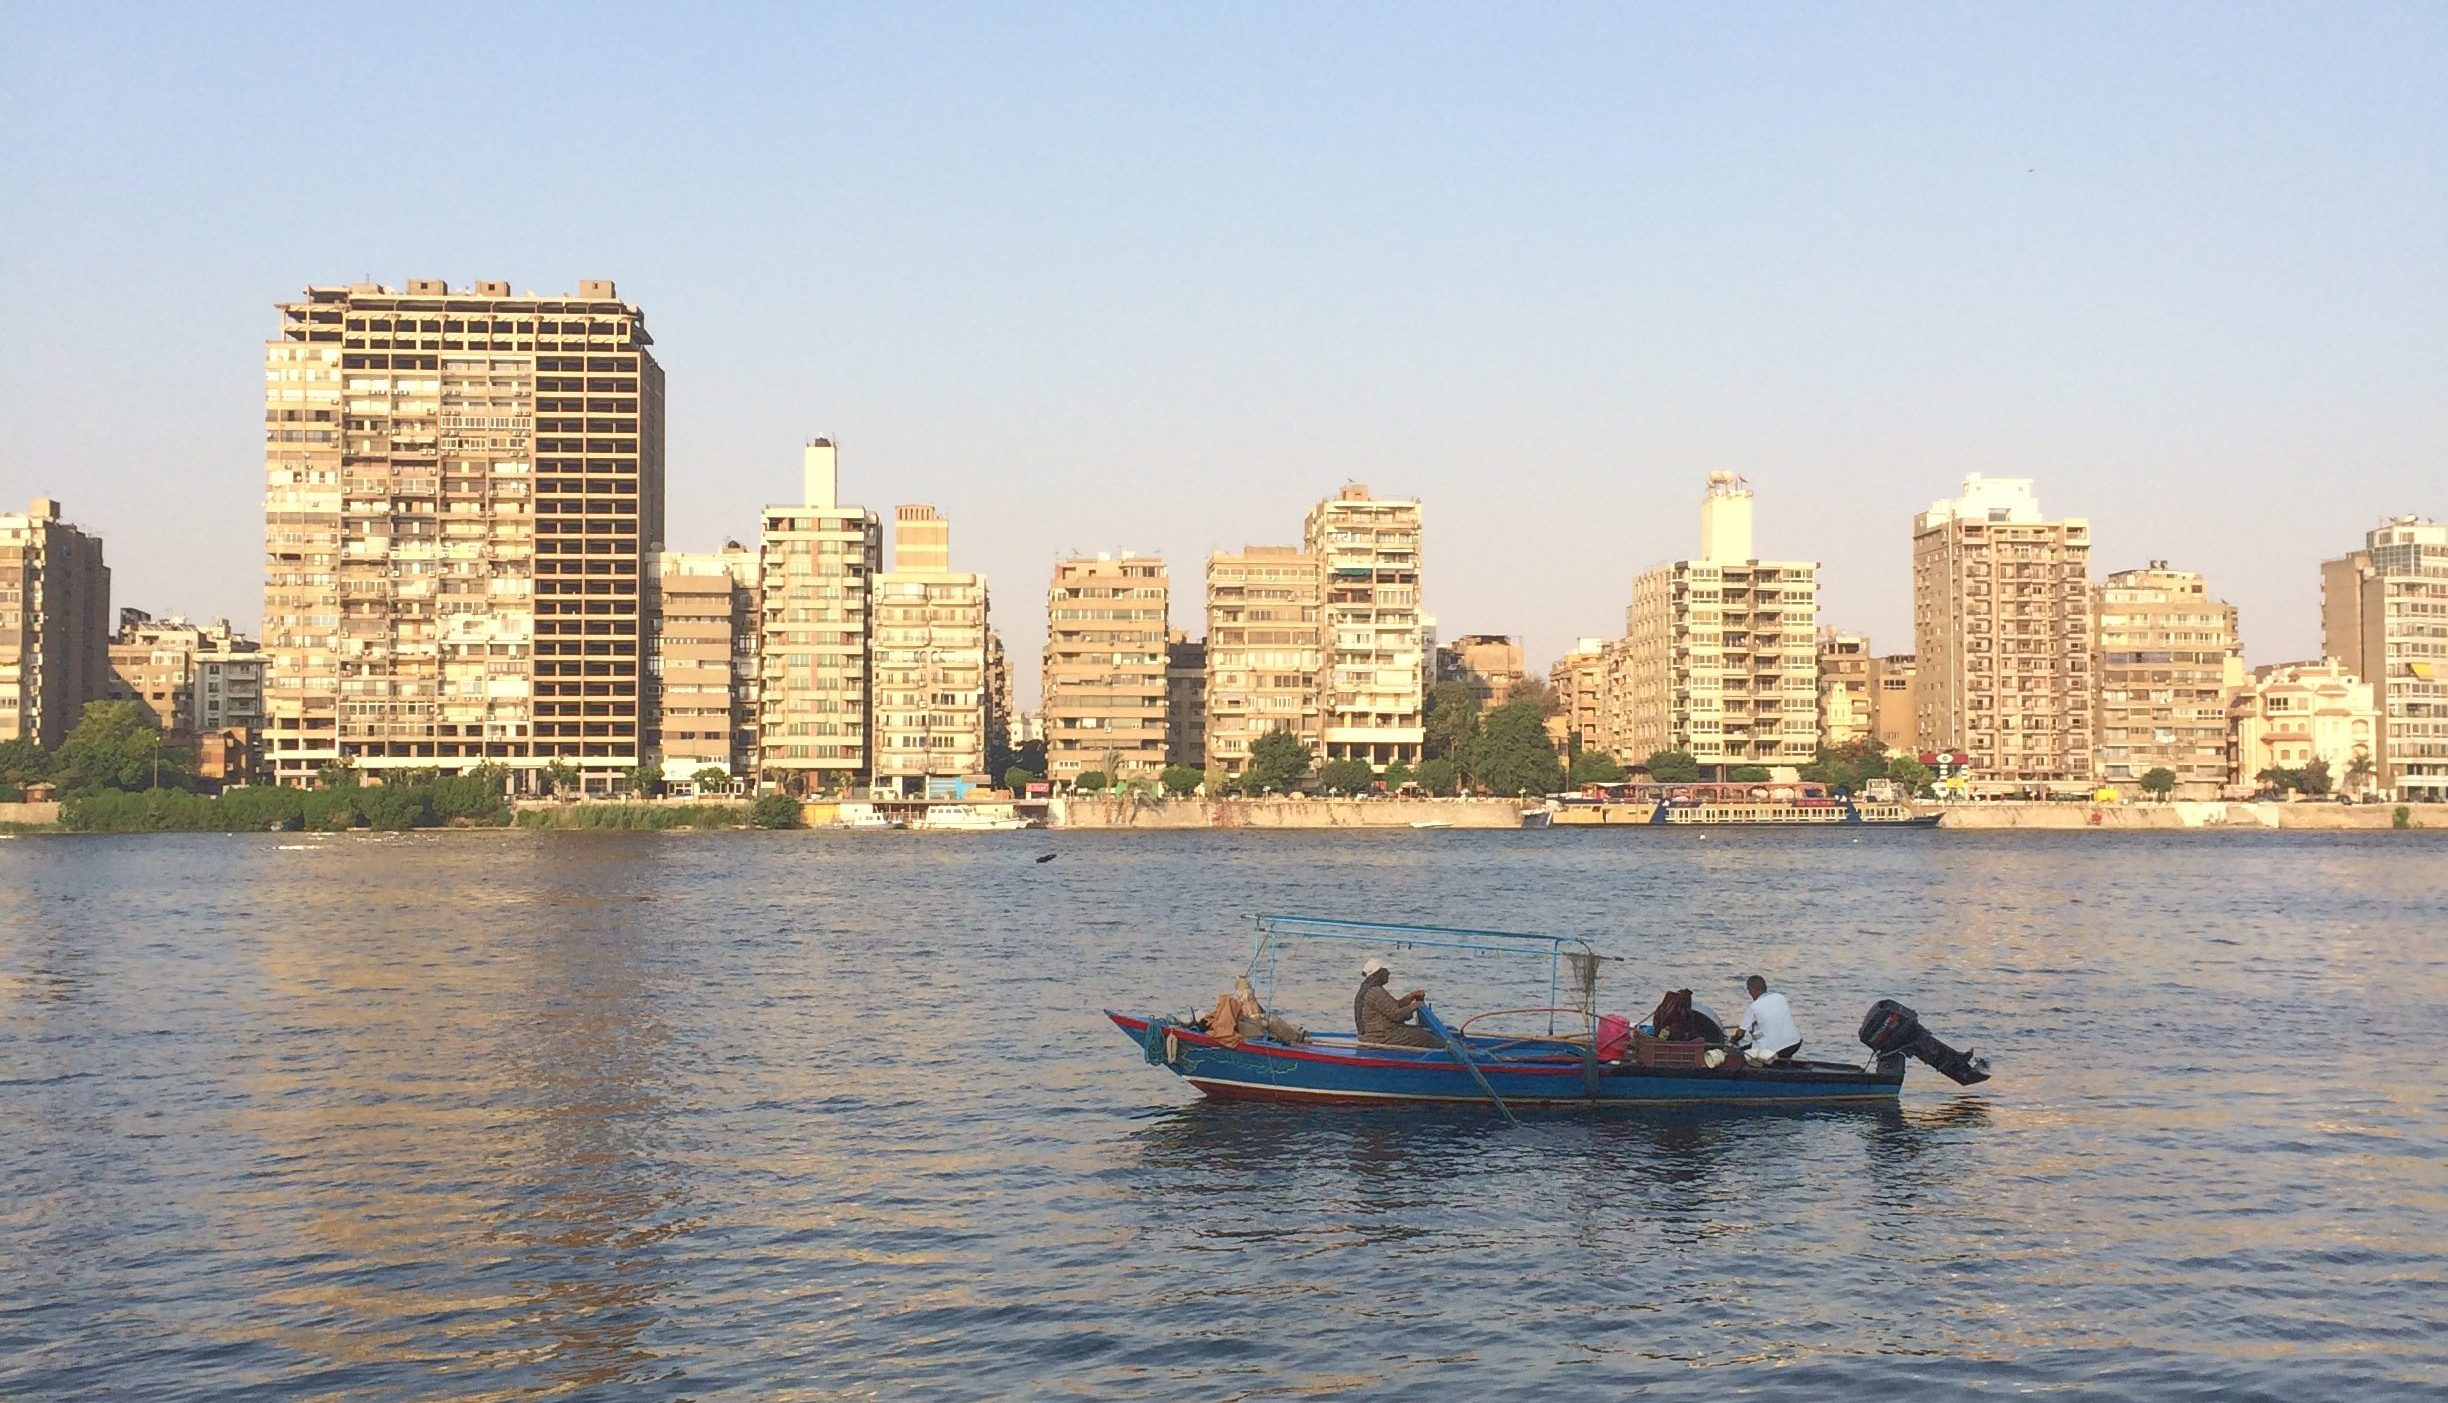 a boat on the Nile